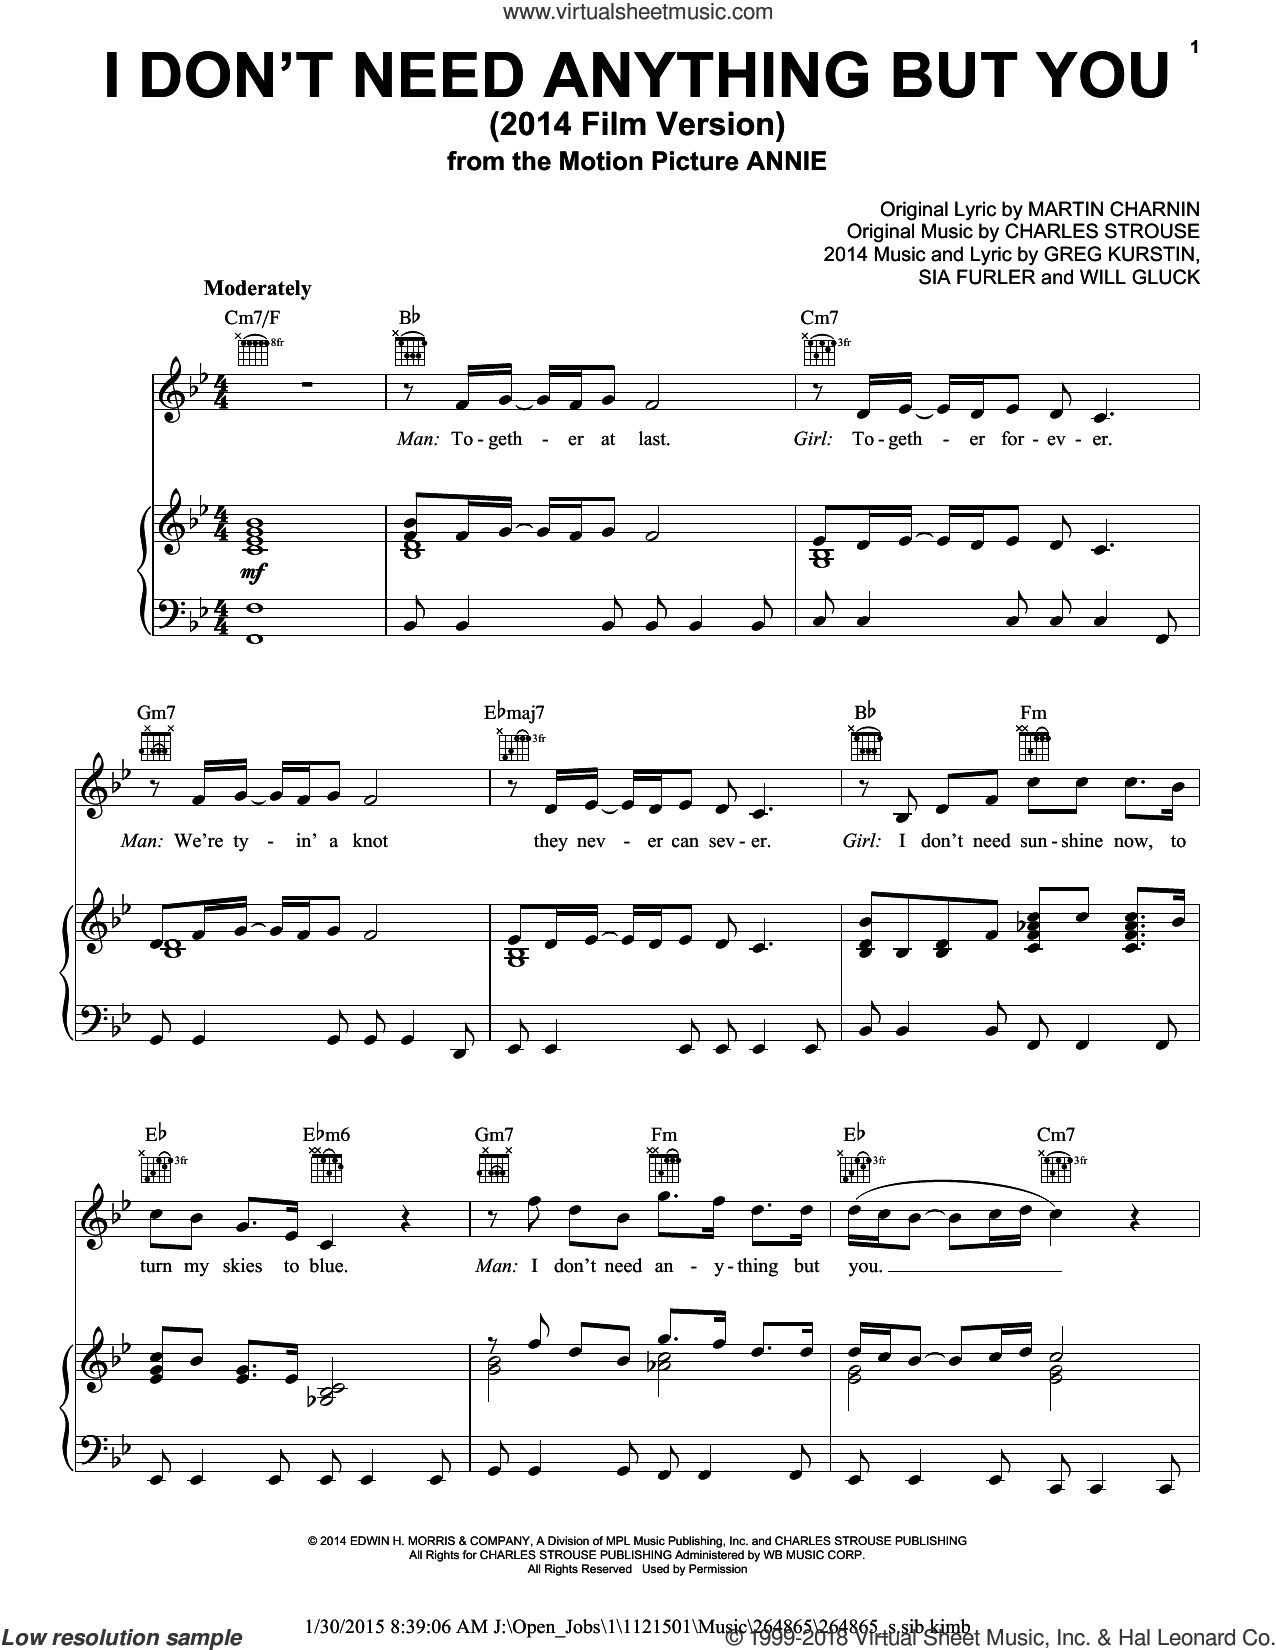 I Don't Need Anything But You (2014 Film Version) sheet music for voice, piano or guitar by Sia Furler, Charles Strouse, Christoph Willibald Gluck, Greg Kurstin and Martin Charnin. Score Image Preview.